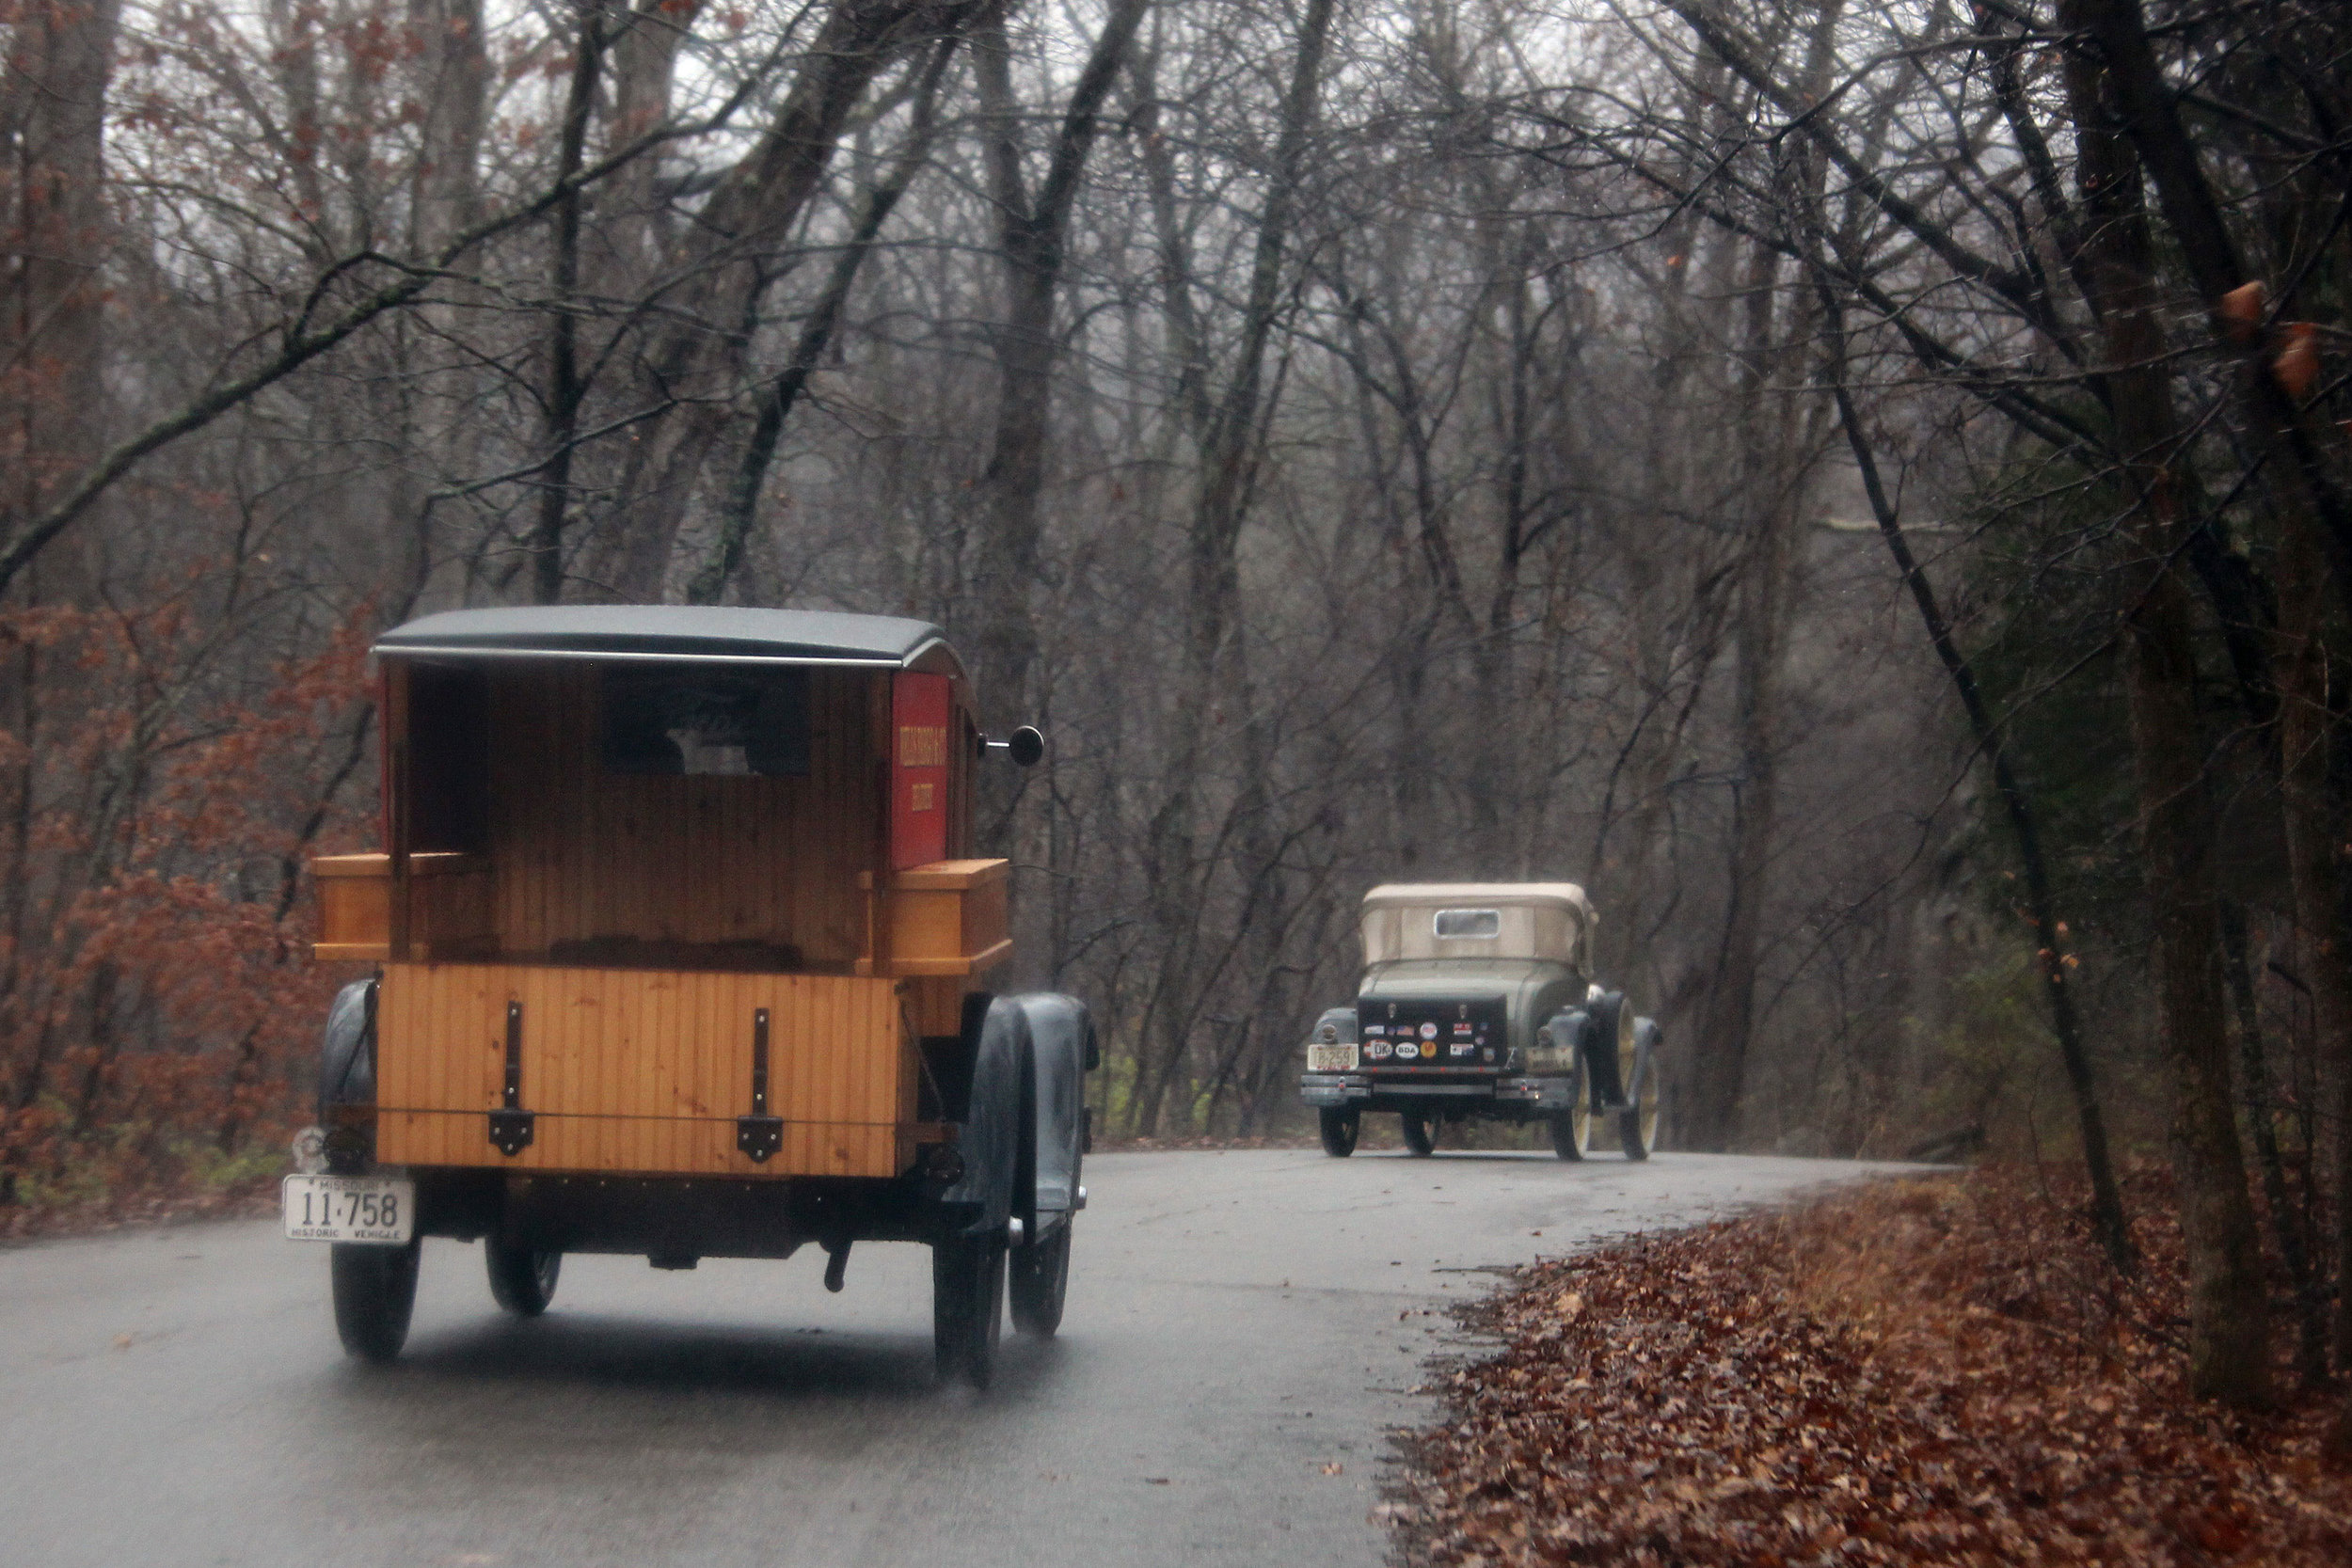 The Peistrups and the Burks Model A's en route to the event regardless of the rain